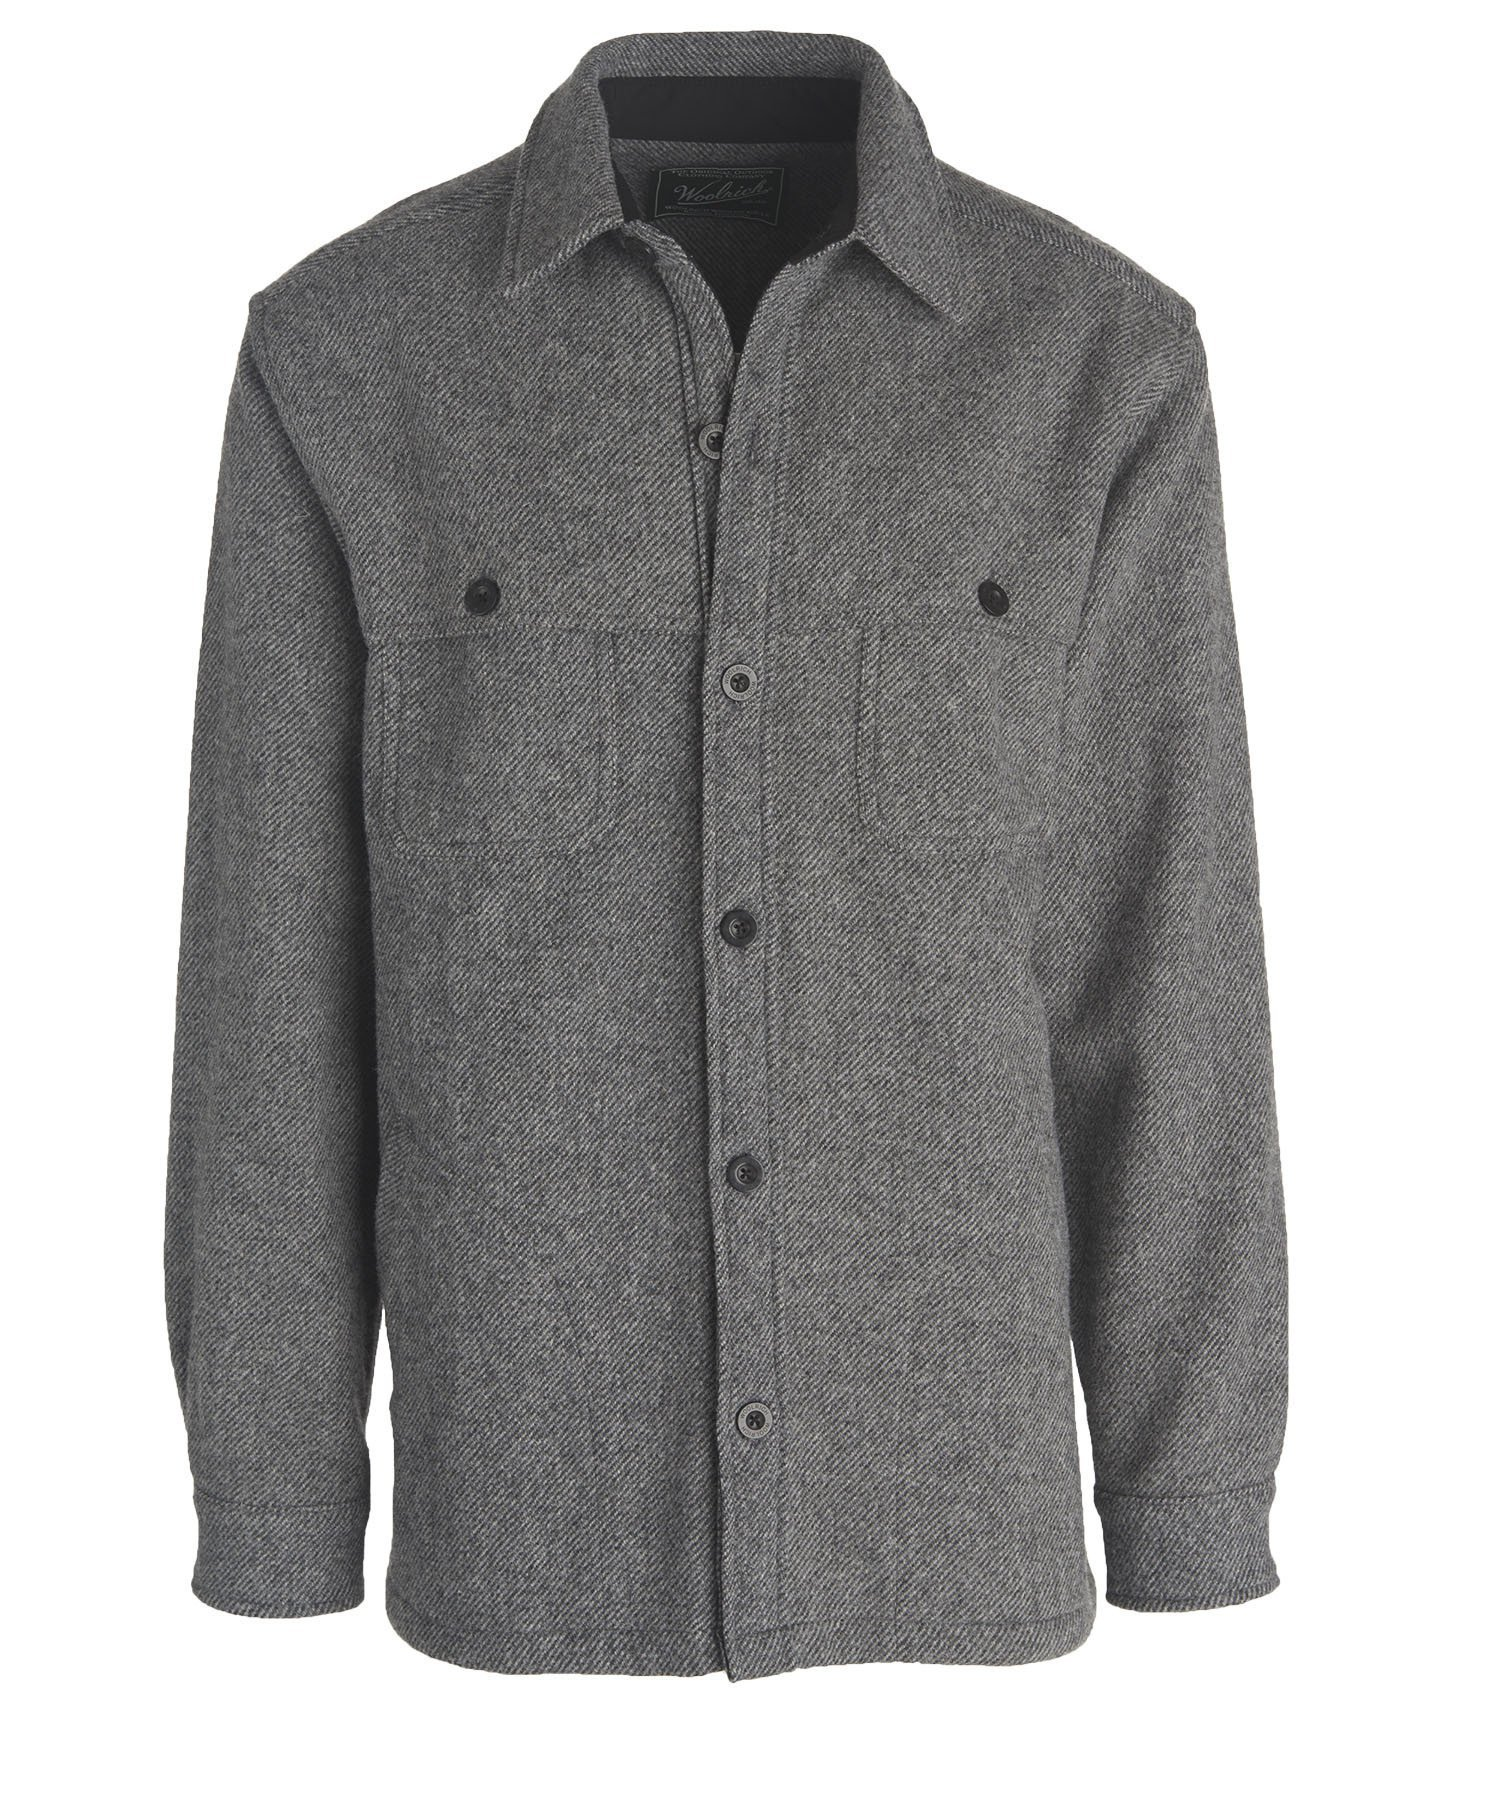 Woolrich Men's Wool Stag Shirt Jacket, New Gray, X-Large